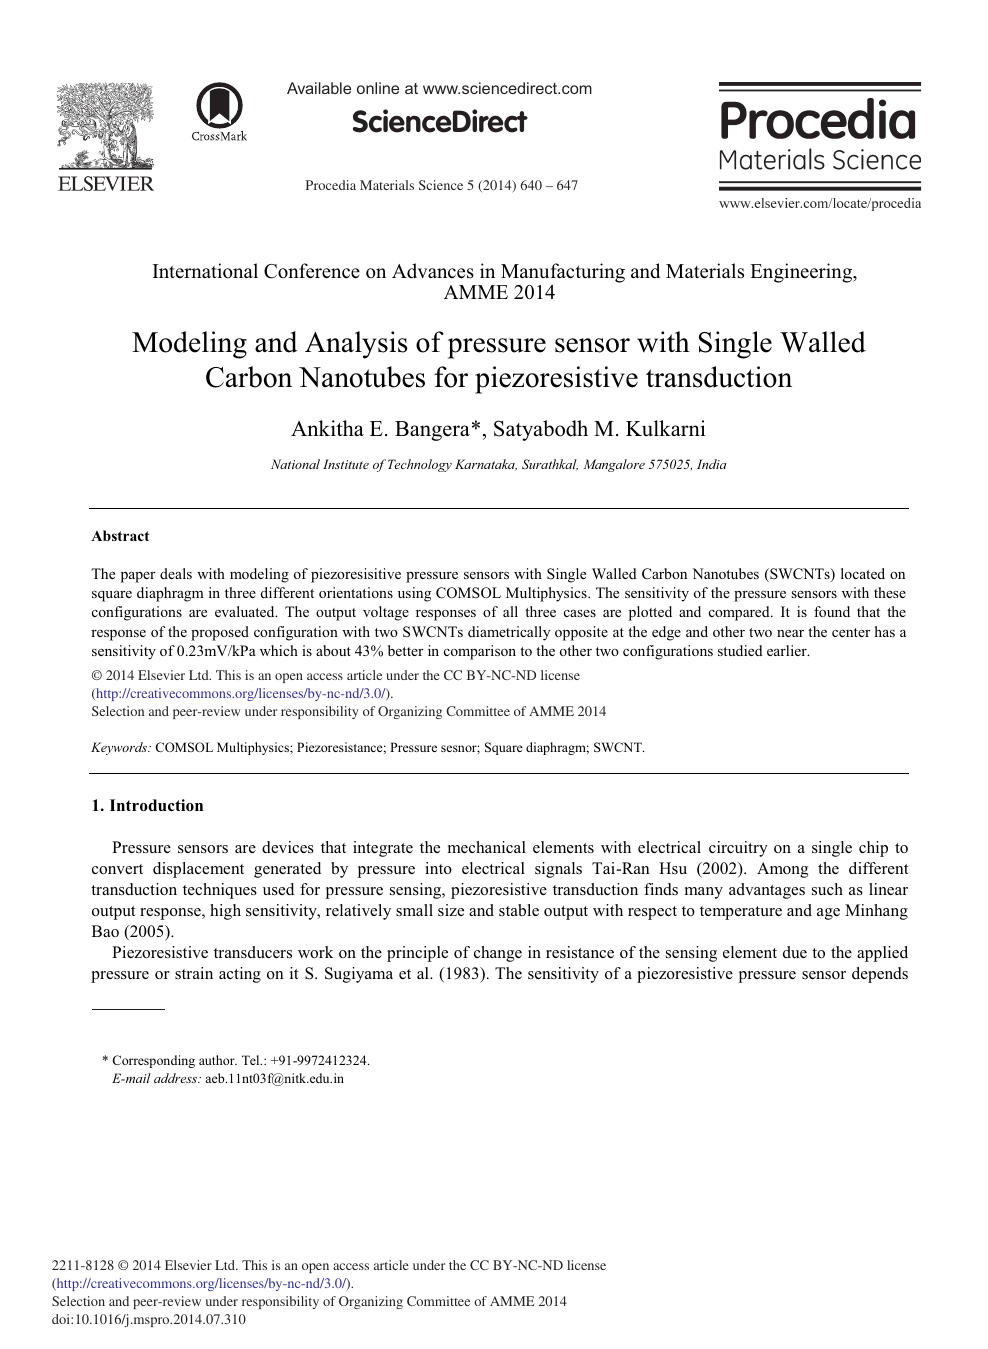 Modeling And Analysis Of Pressure Sensor With Single Walled Carbon Nanotubes For Piezoresistive Transduction Topic Of Research Paper In Materials Engineering Download Scholarly Article Pdf And Read For Free On Cyberleninka